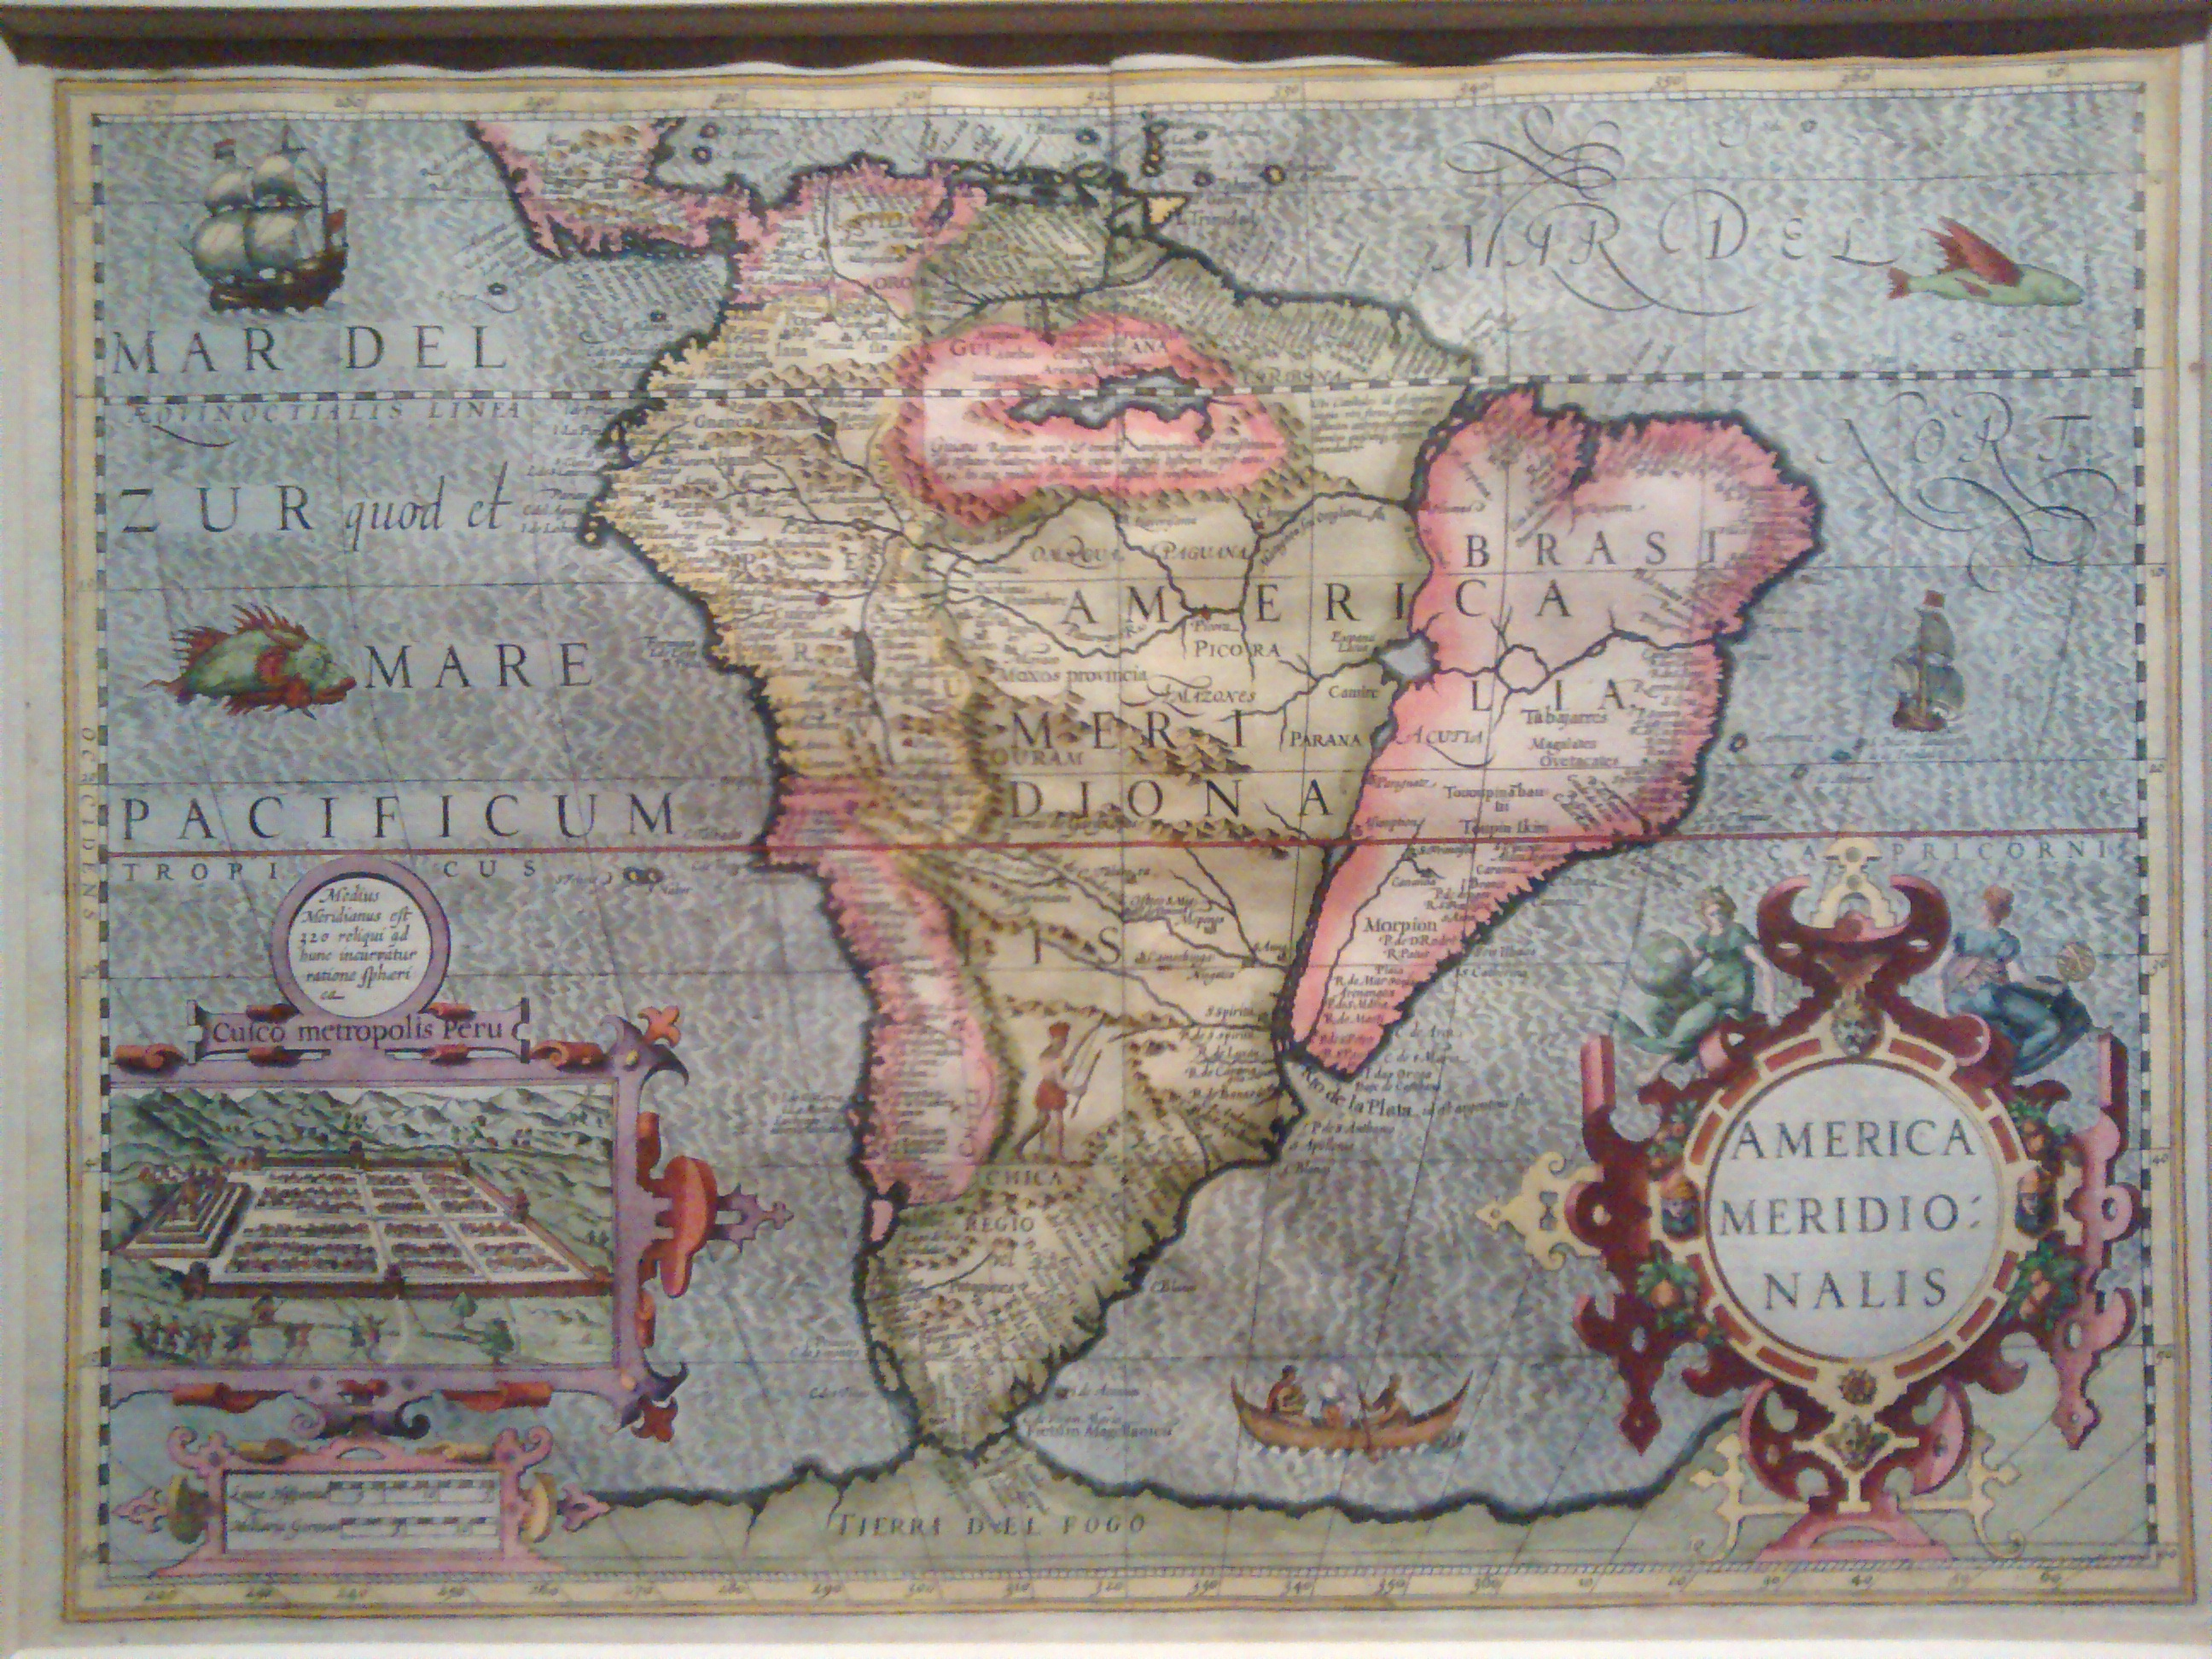 Map of South America (historic)